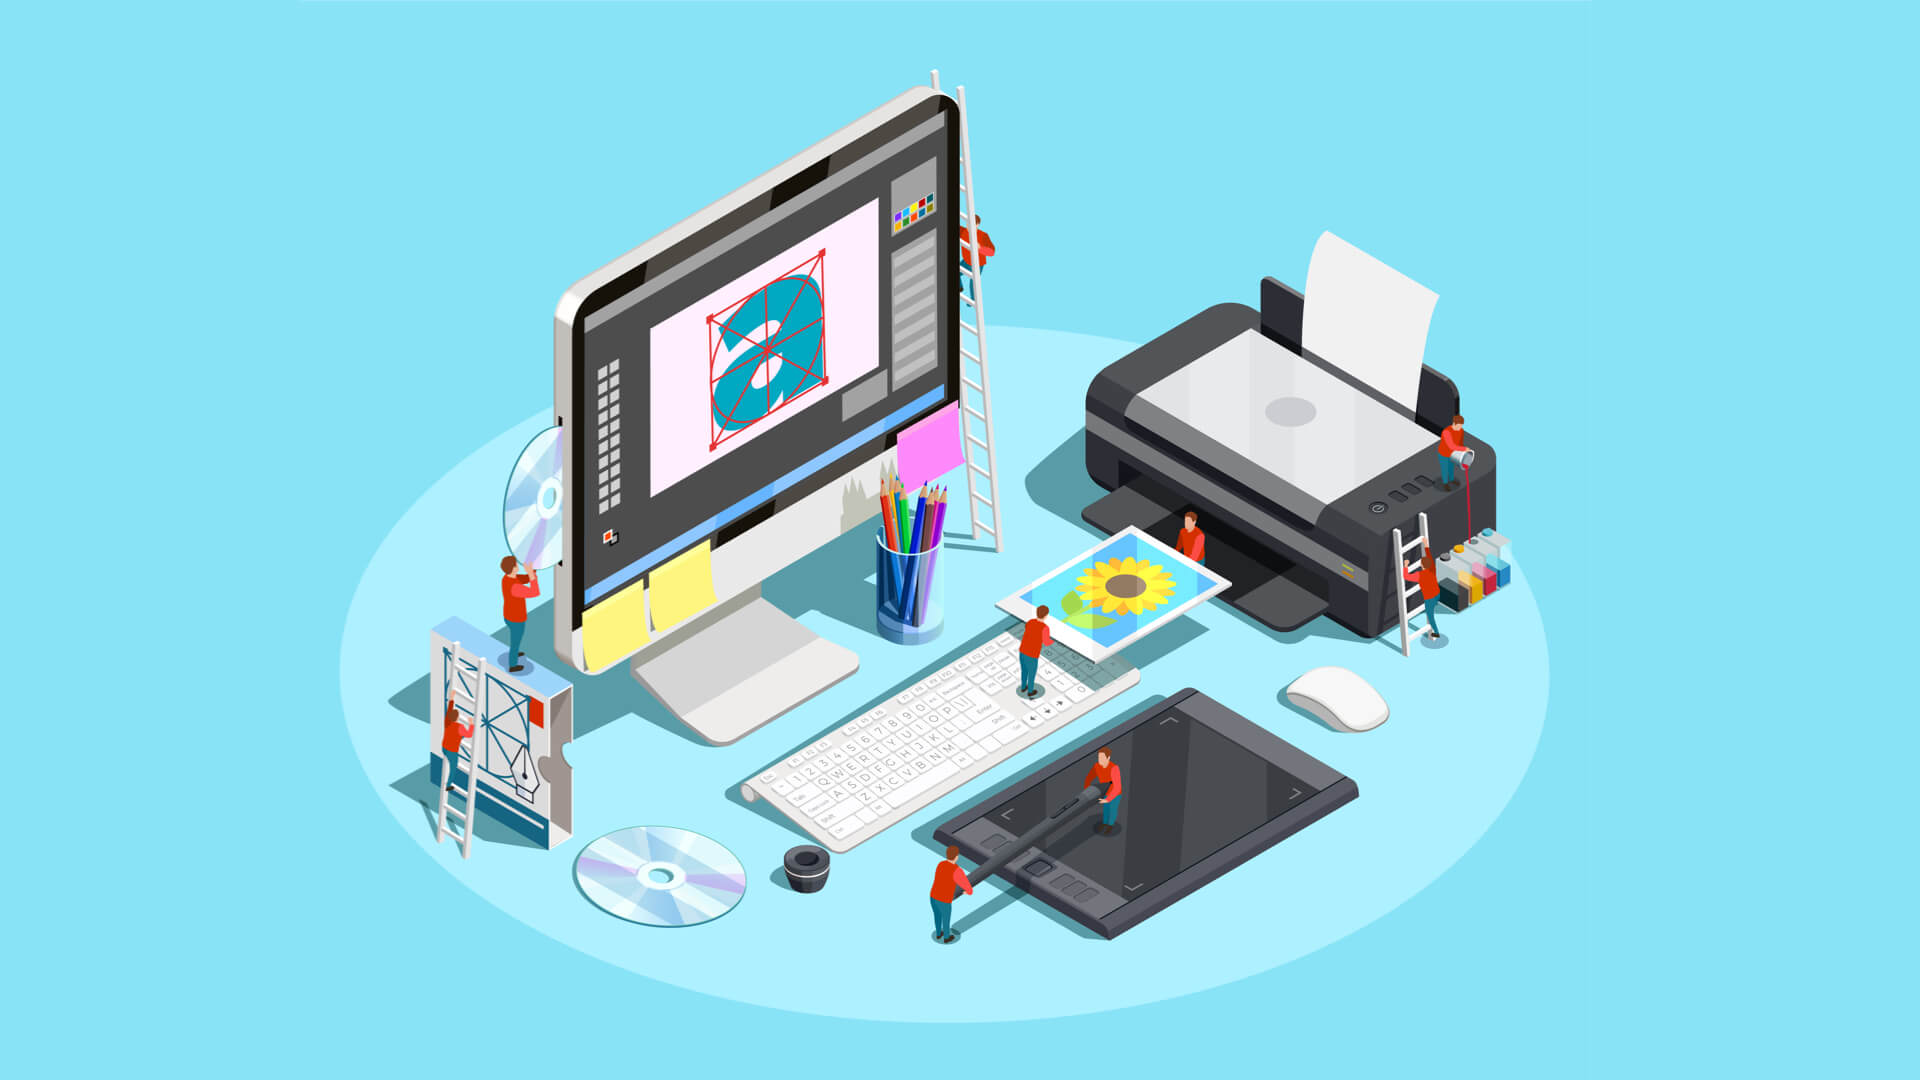 Understanding Isometric Designs With Adobe Illustrator CC